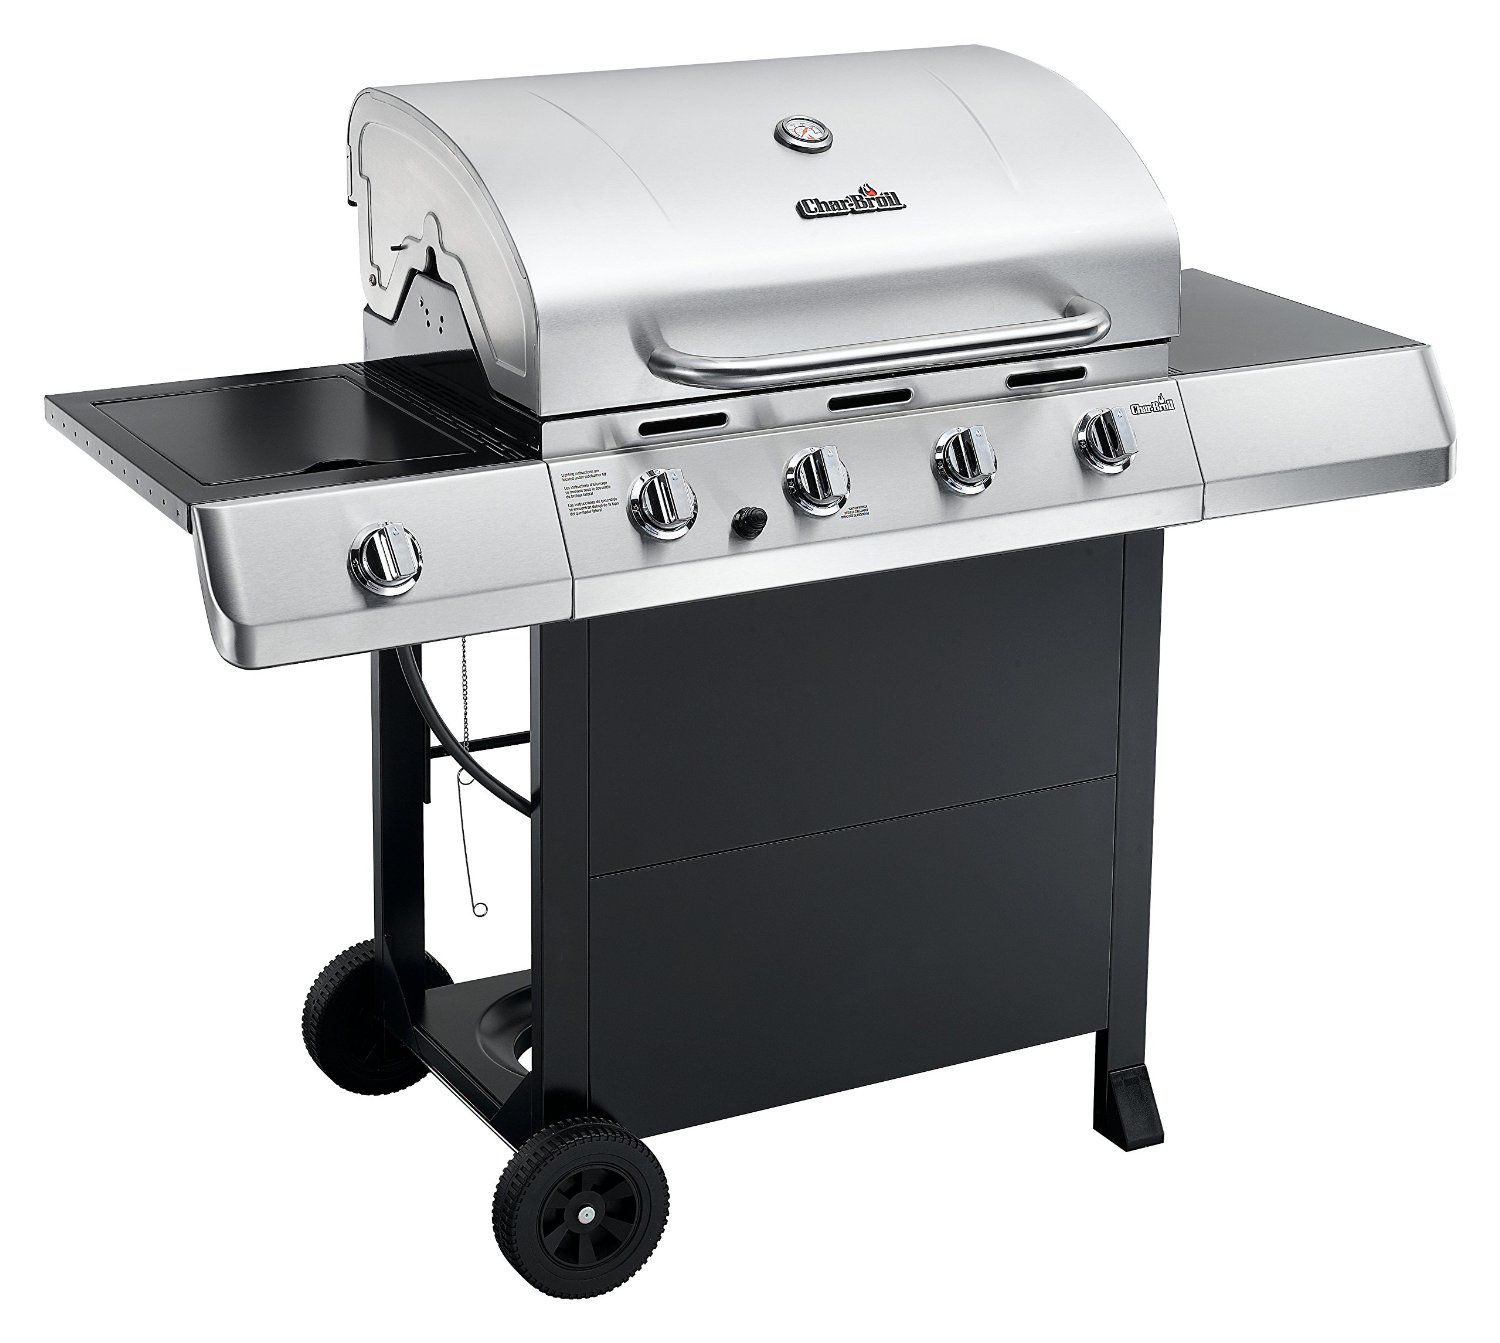 Char-Broil Classic 4-burner Gas Grill | 25+ Gifts for Him